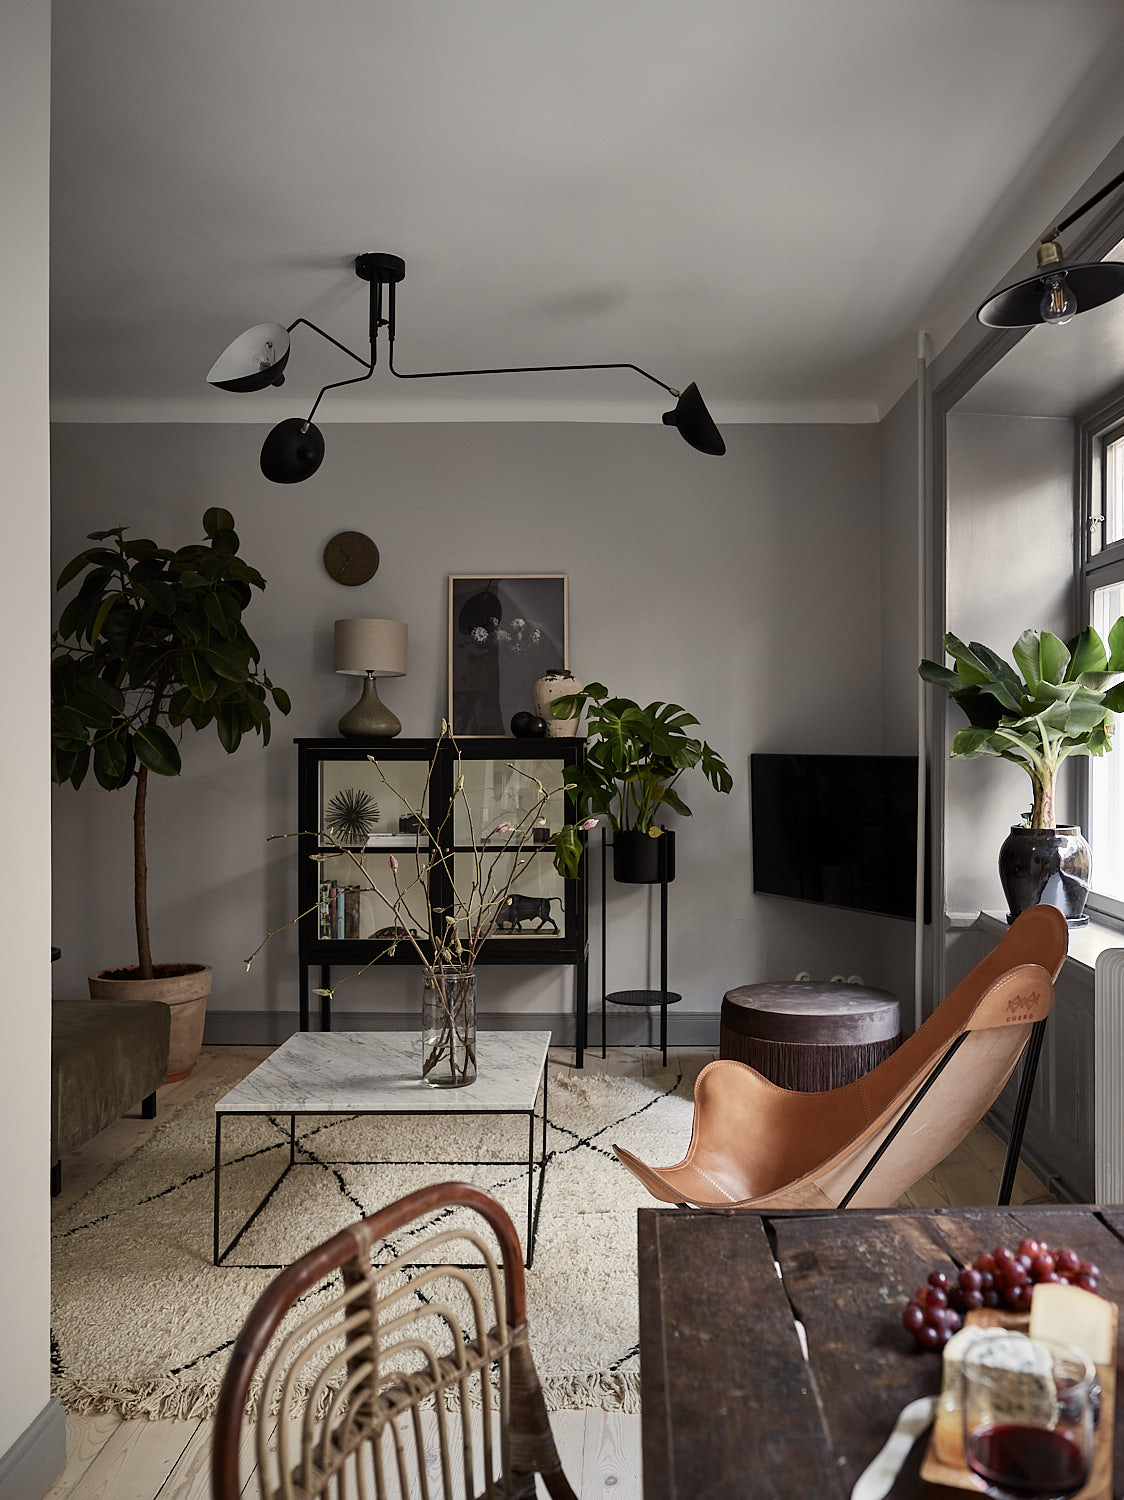 Other Than The Range Of Grey Wall Colors From Light In Living Room To Darker Bedroom Almost Black Kitchen That Look